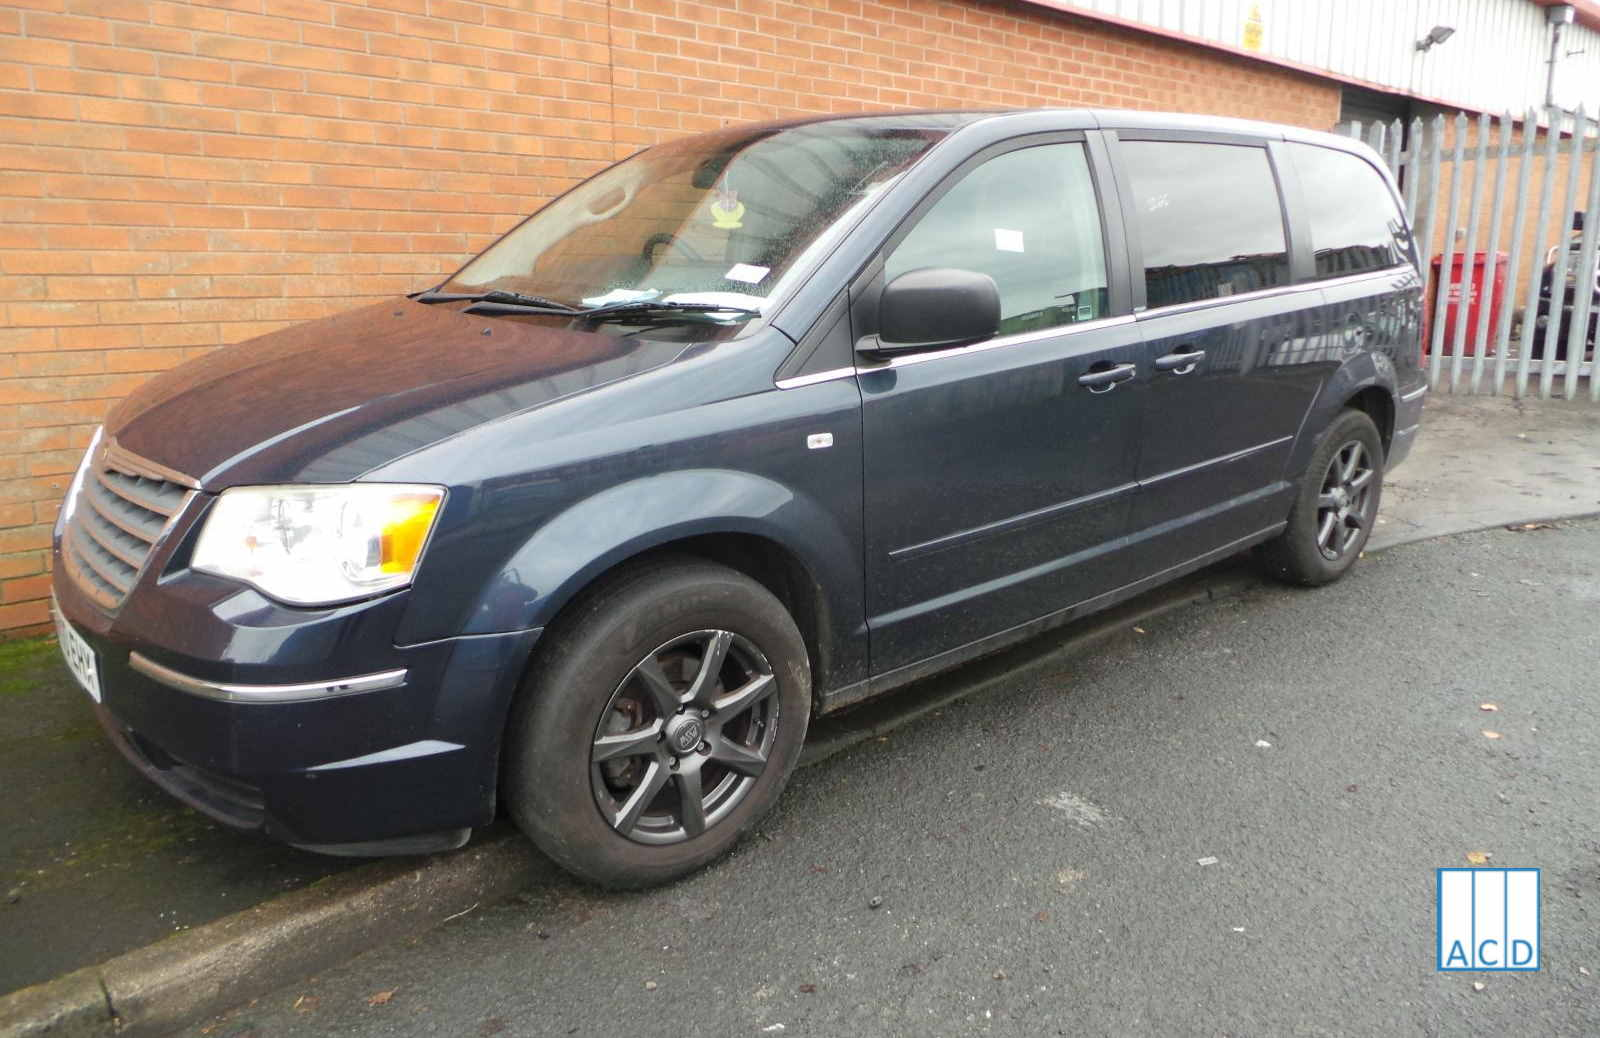 Chrysler Grand Voyager 2.8L Diesel 6-Speed Automatic 2010 #3265 01